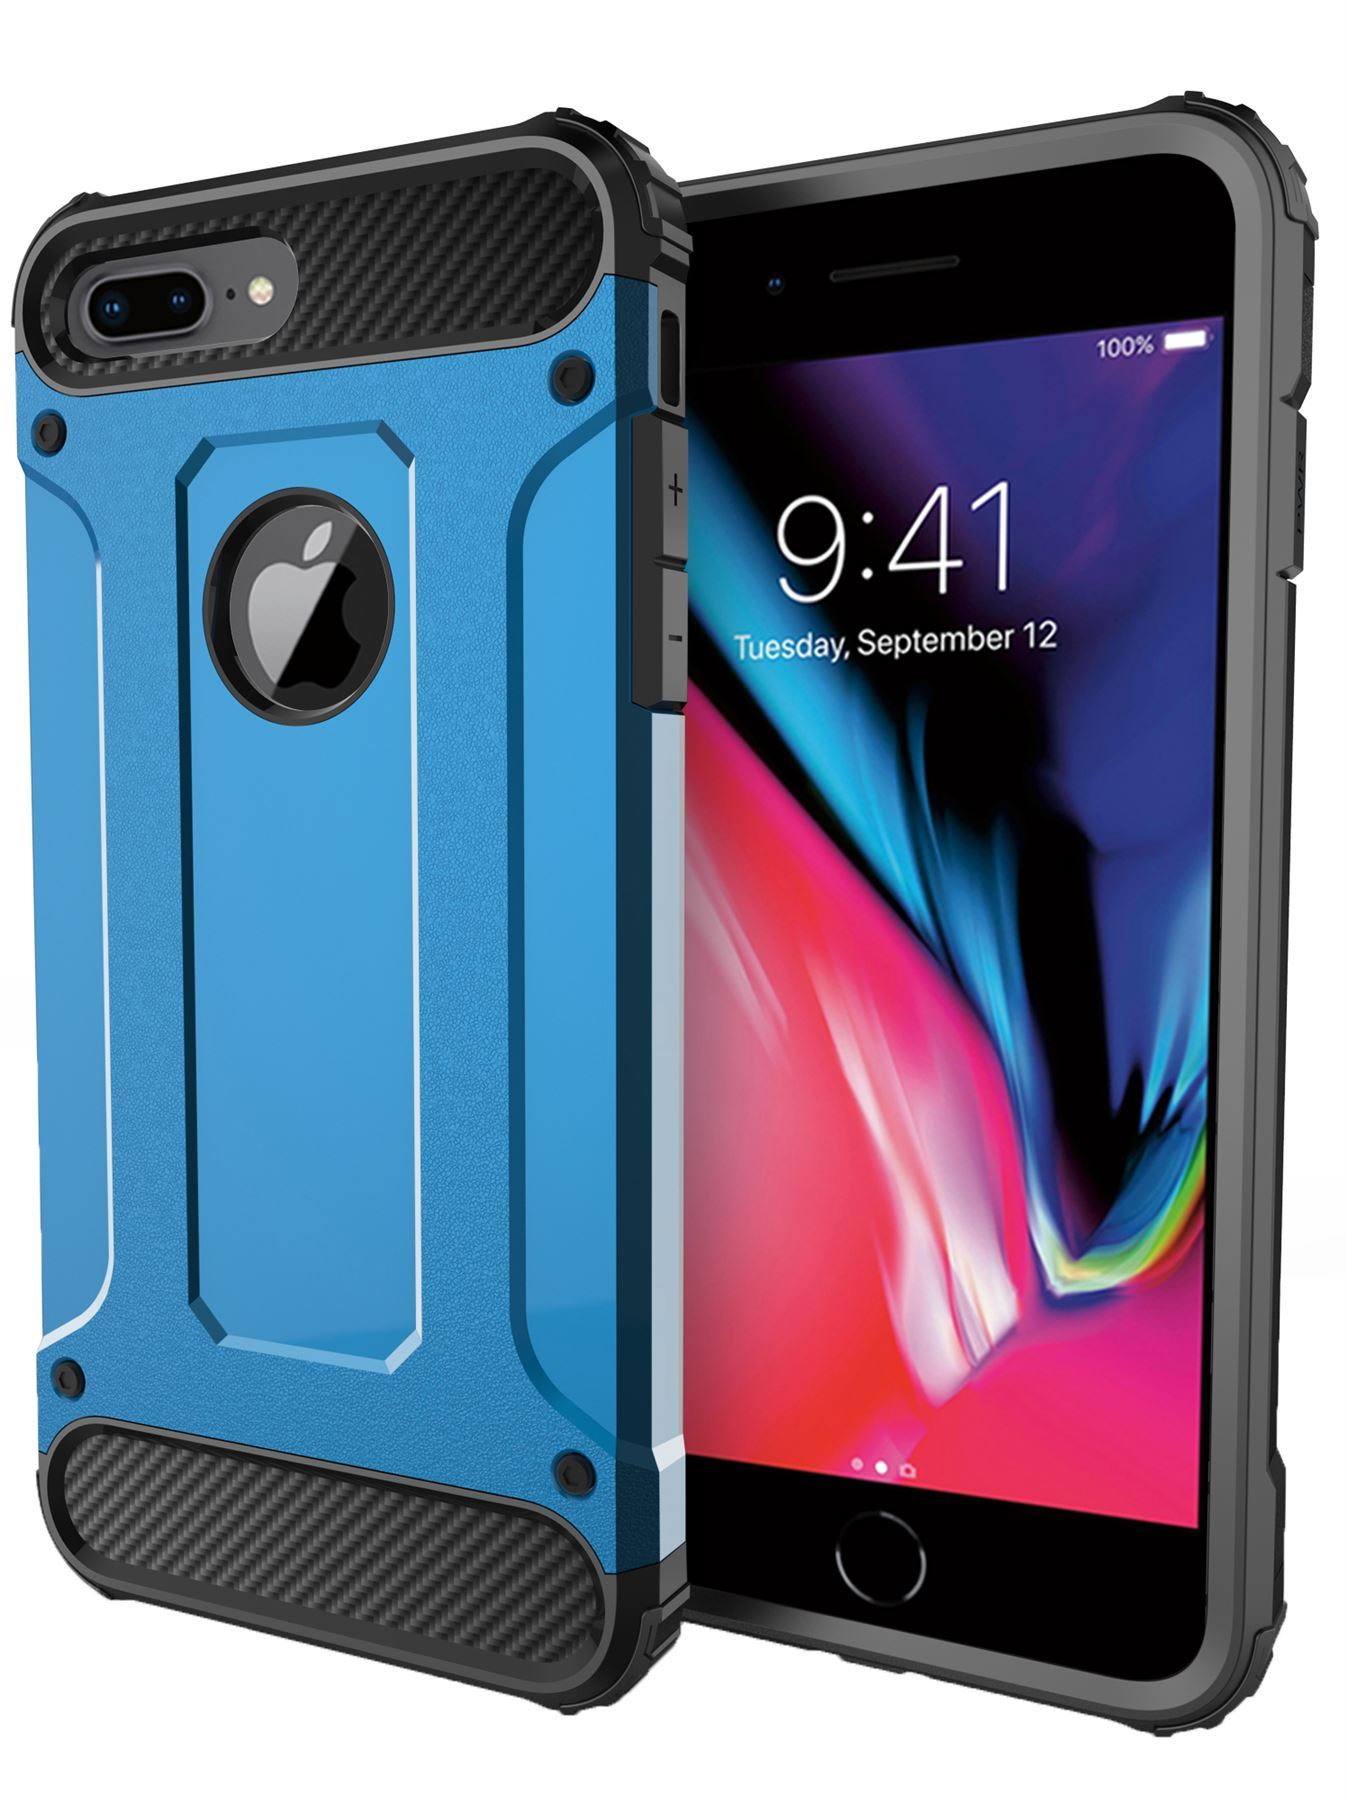 Hybrid-Armor-Shockproof-Rugged-Bumper-Case-For-Apple-iPhone-10-X-8-7-Plus-6s-5s miniature 79